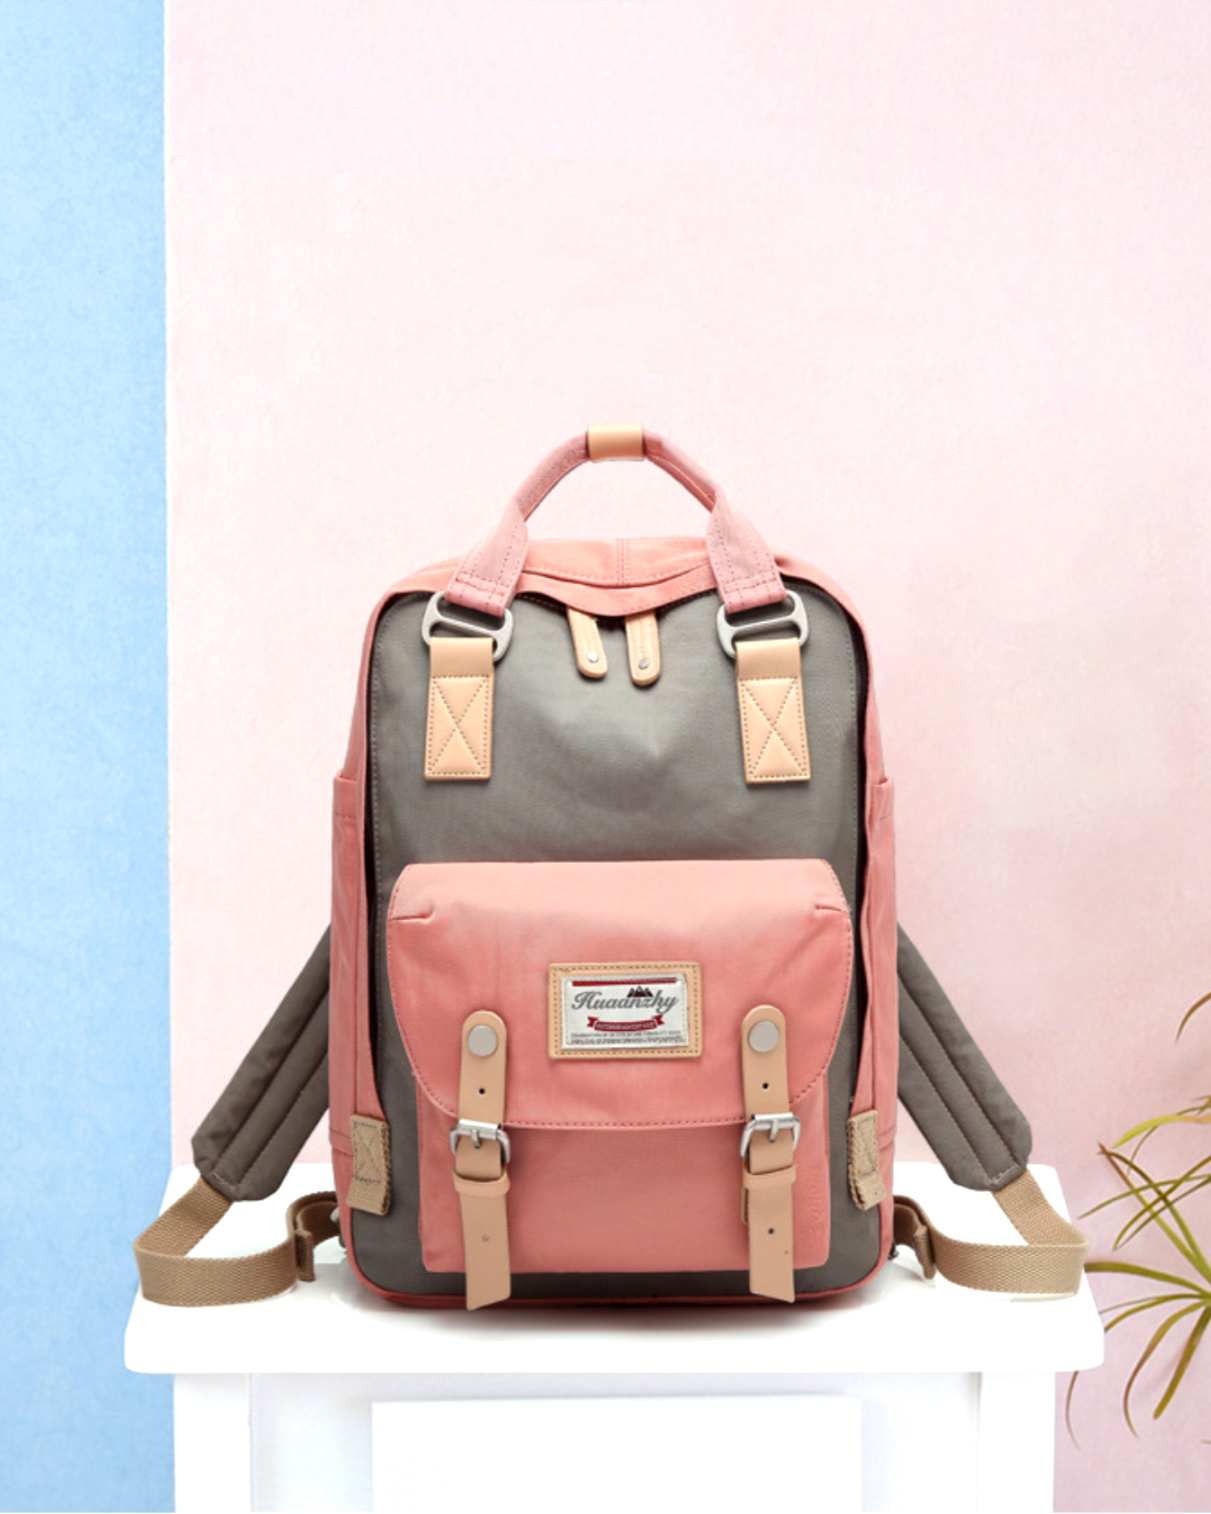 4dc635c73 Are you looking for school bag or a student backpack? This Pink Panther  Backpack is